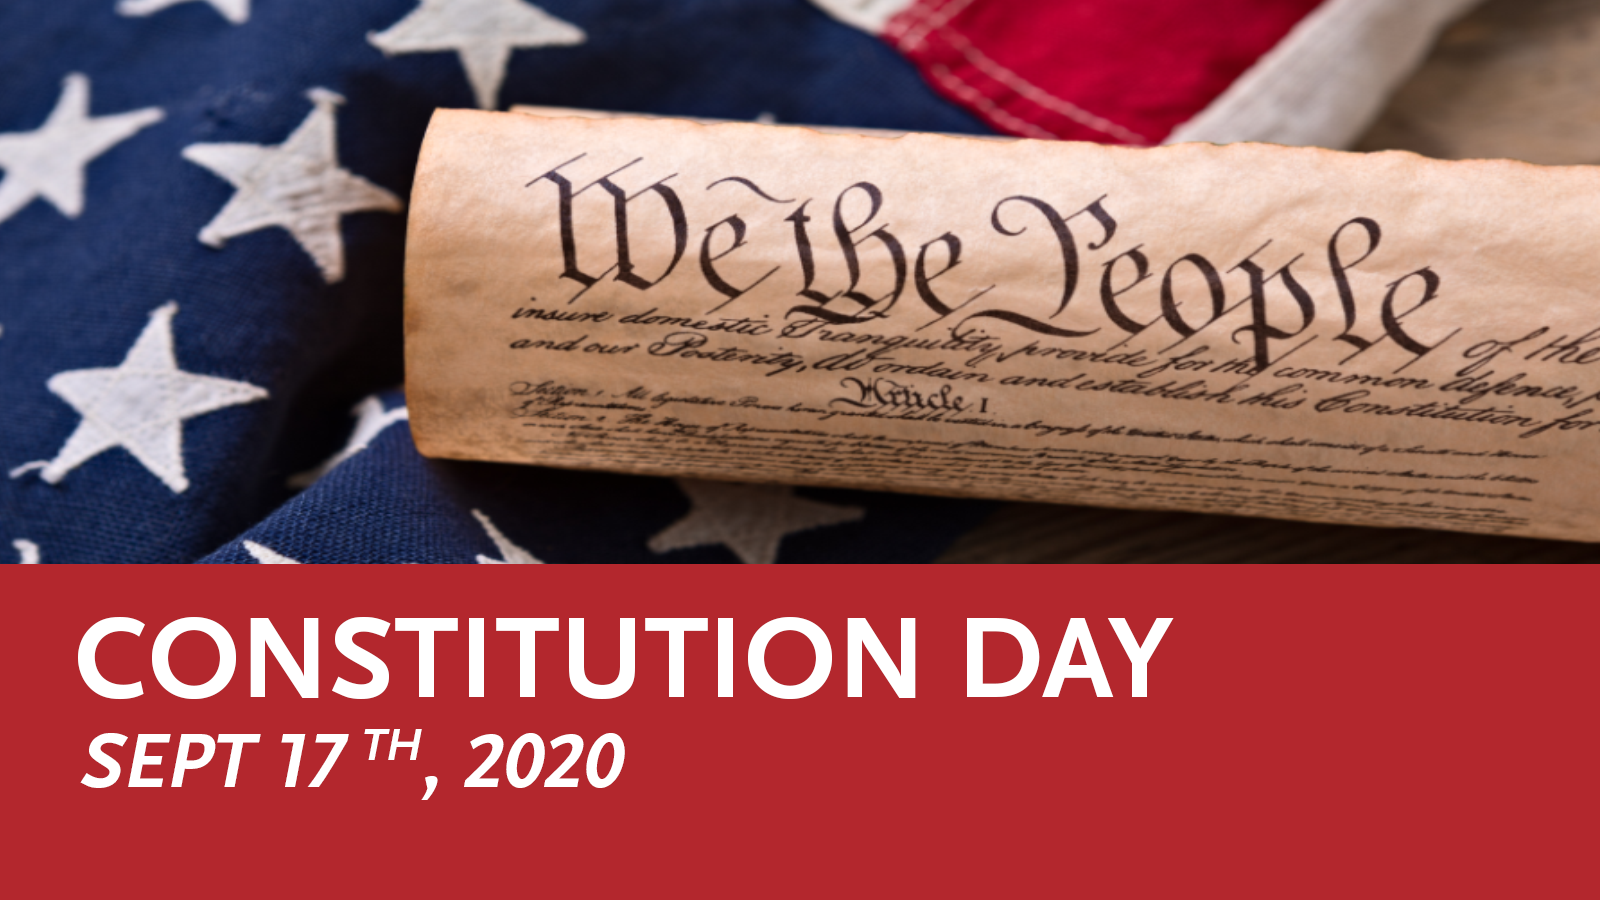 Constitution Day Sept 17, 2020